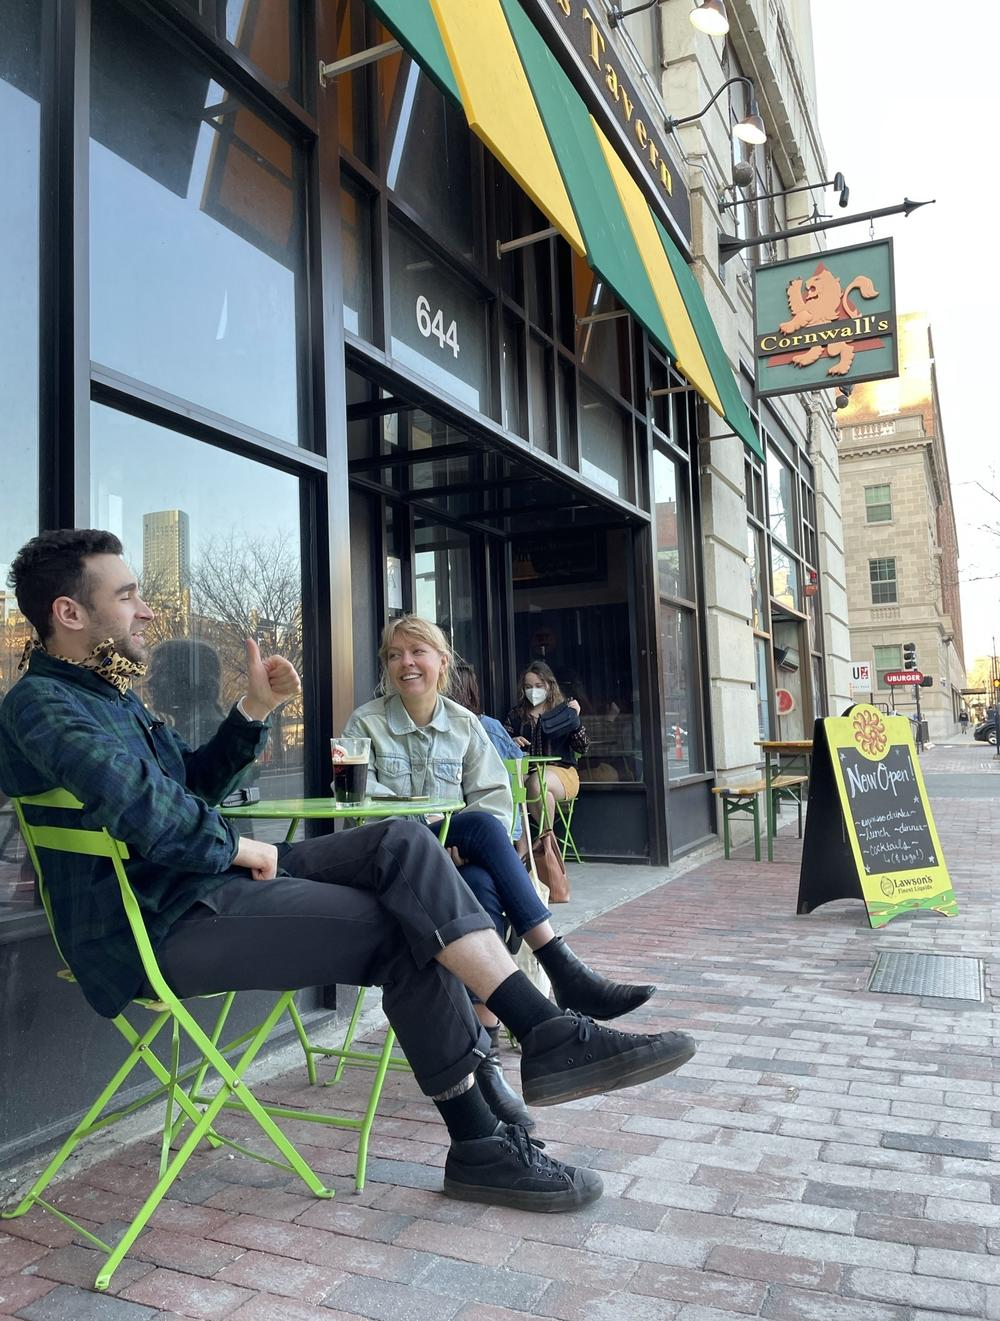 Grad students Julian Geltman and Kailey Slavik savor a cold beer and the warm weather on the first day that Boston restaurants are allowed to put tables out on the sidewalks again, and Cornwall's delights in the extra business.